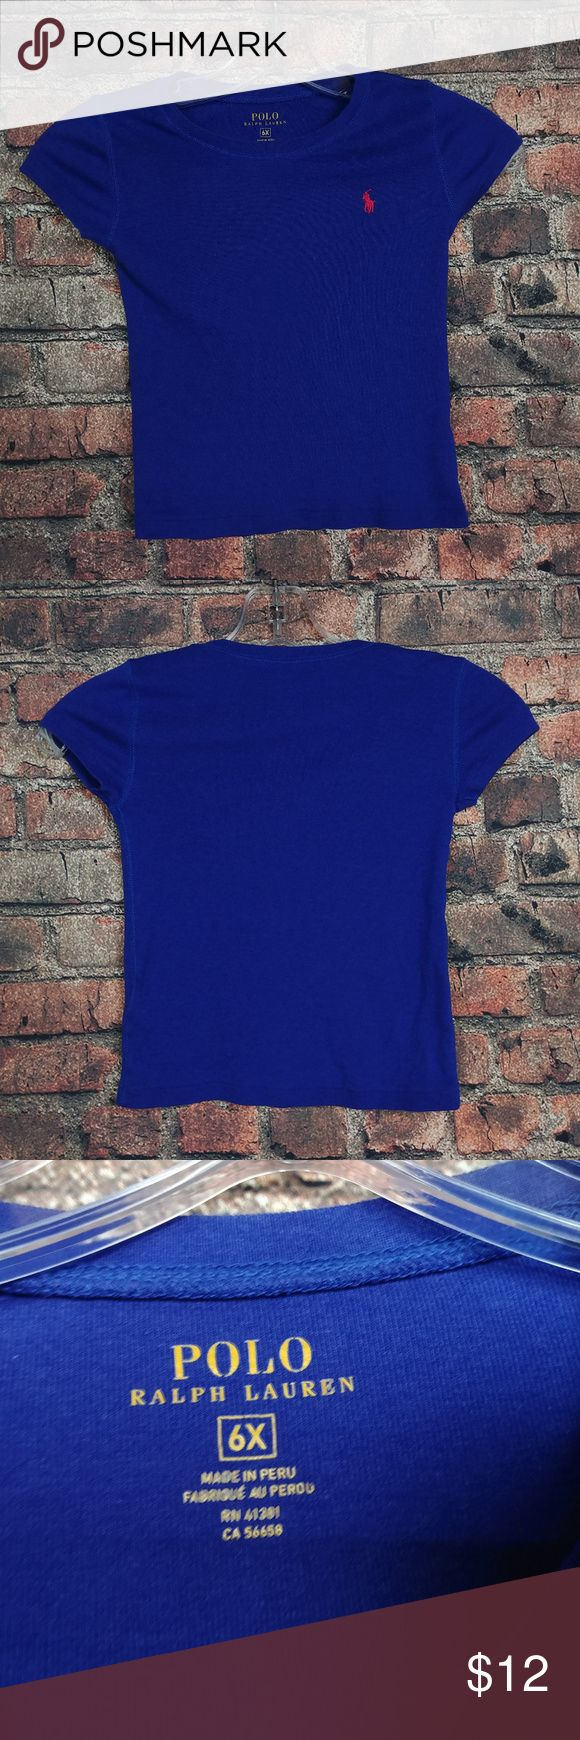 Polo Ralph Lauren T Shirt Top Size 6X Youth Girls Polo Ralph Lauren T Shirt Top Size 6X Youth Girs Blue Red Pony SOFT CUTE SS :P2.94:L31:15-18  Good Condition! (See Photos). Polo by Ralph Lauren Shirts & Tops Tees - Short Sleeve